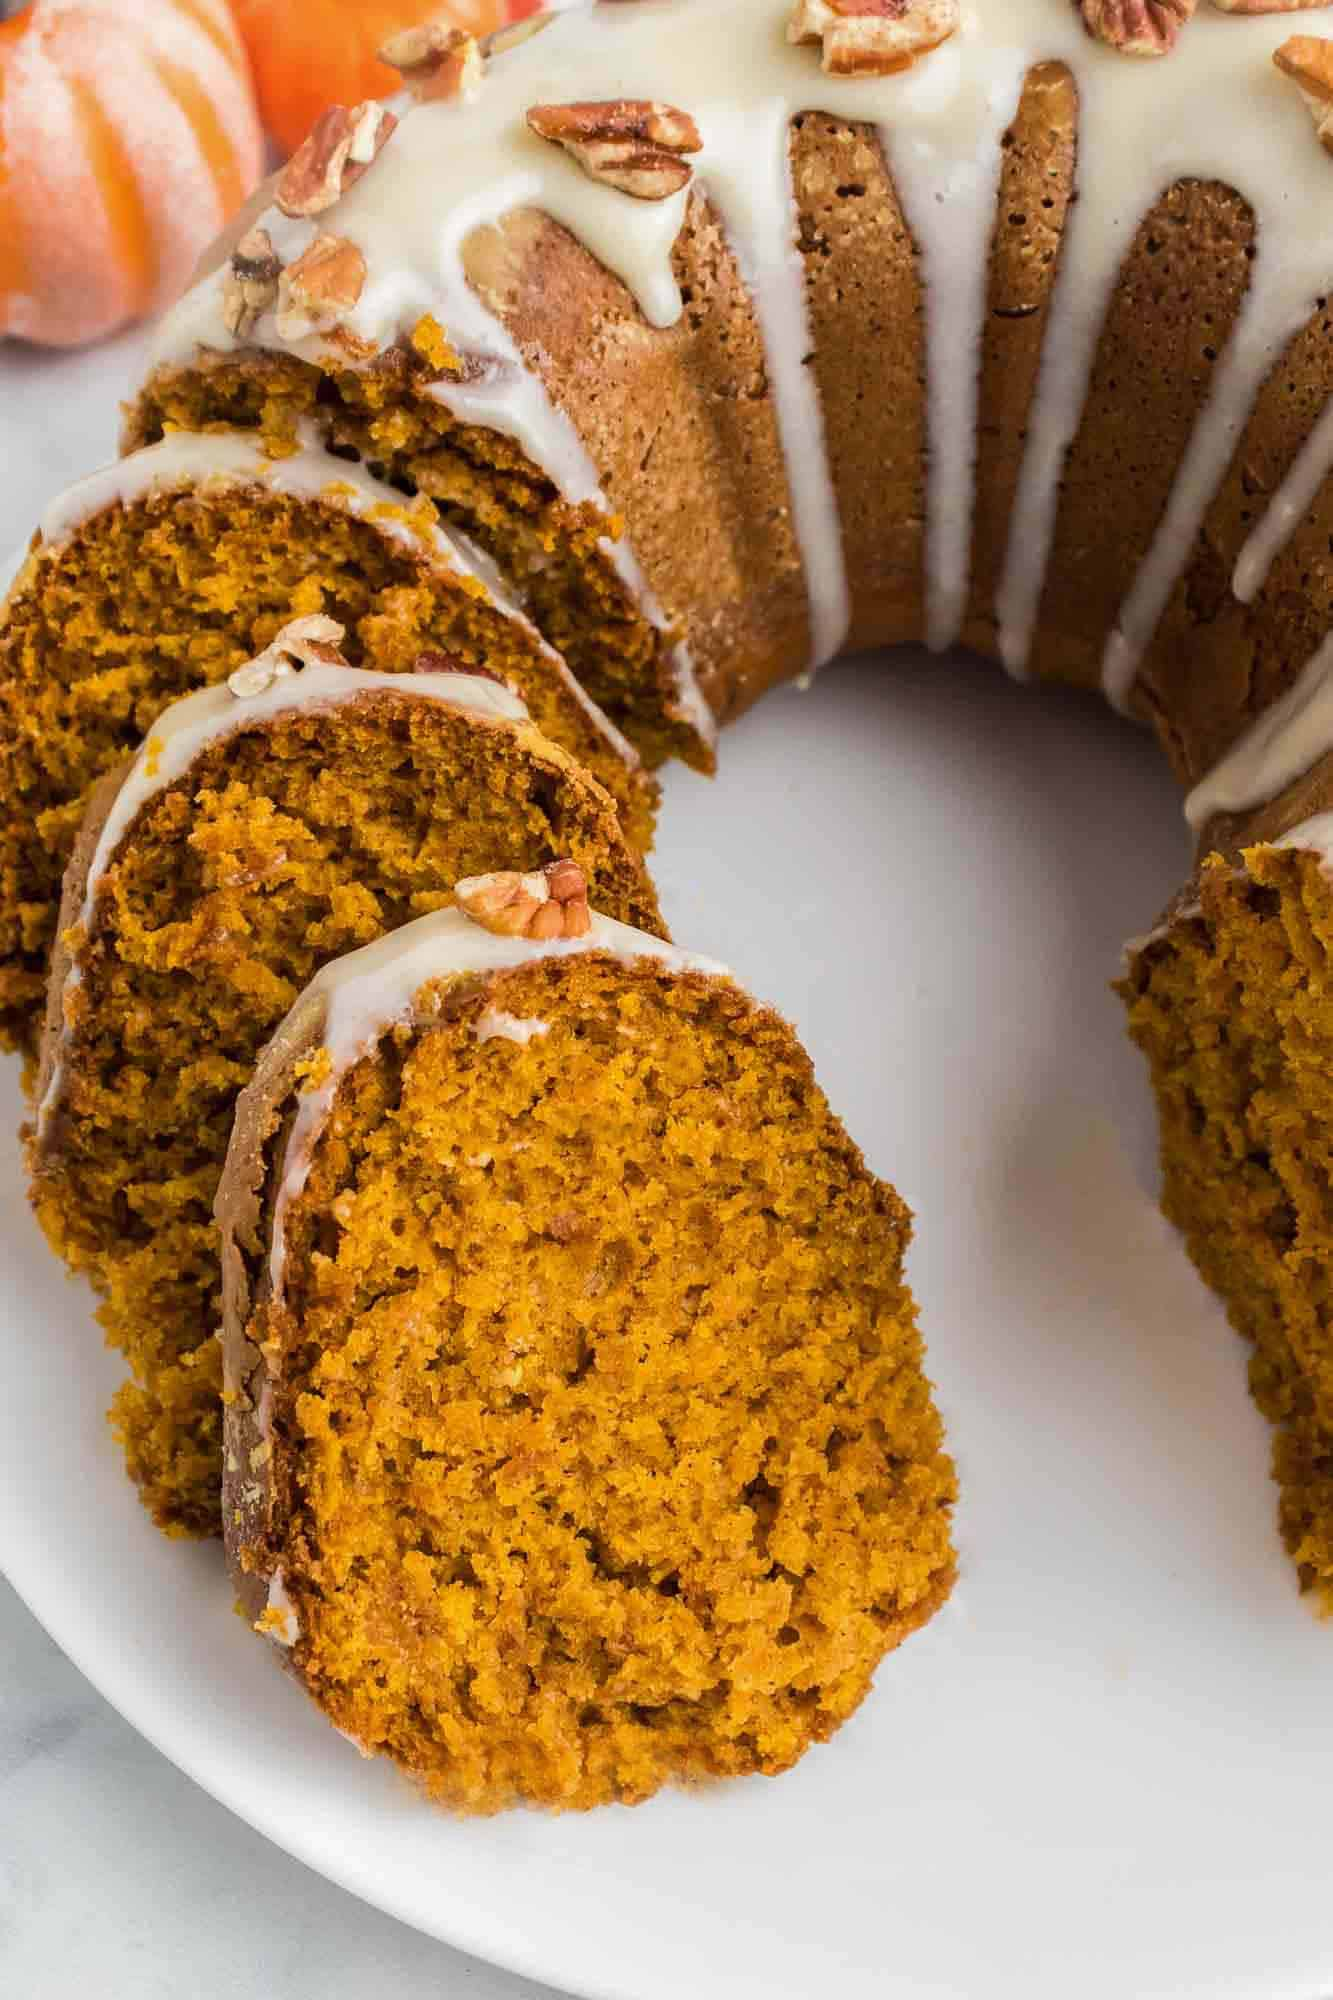 Sliced Pumpkin Bundt Cake with cream cheese frosting on top